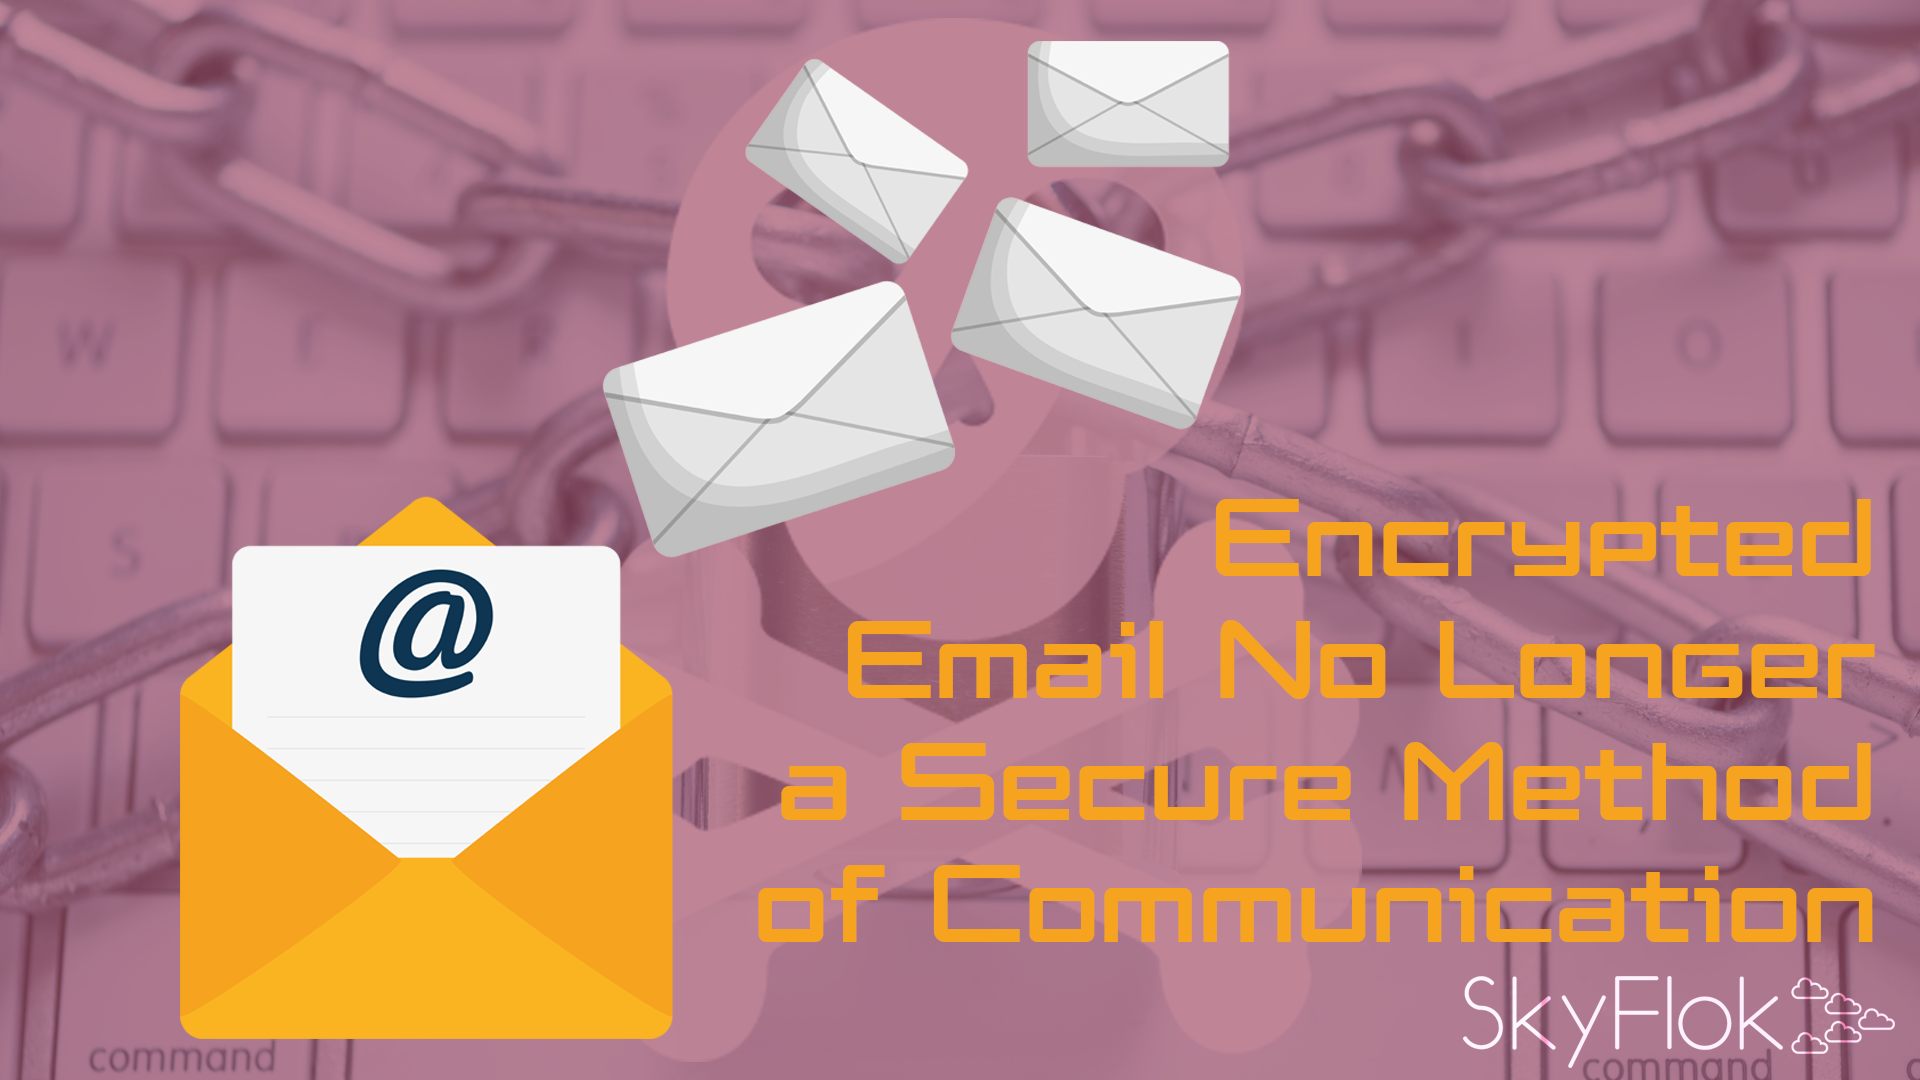 Encrypted Email No Longer a Secure Method of Communication After Critical Flaw Discovered in PGP